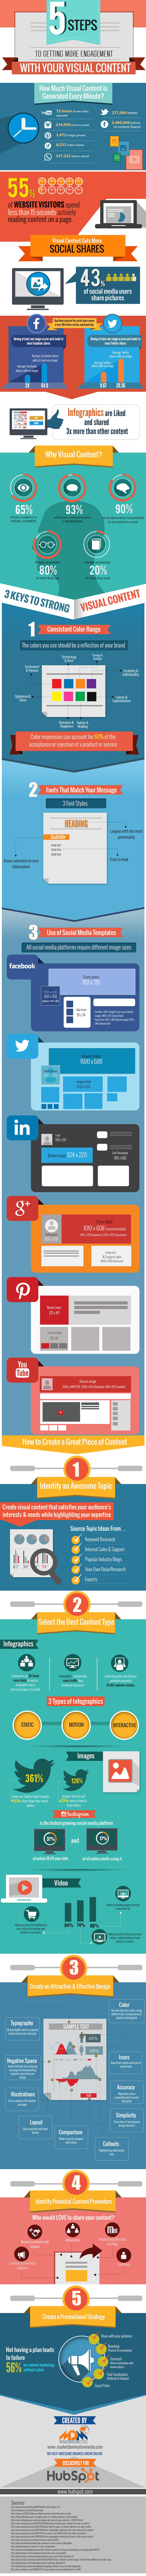 5 Steps to Getting More Engagement With Your Visual Content #infographic